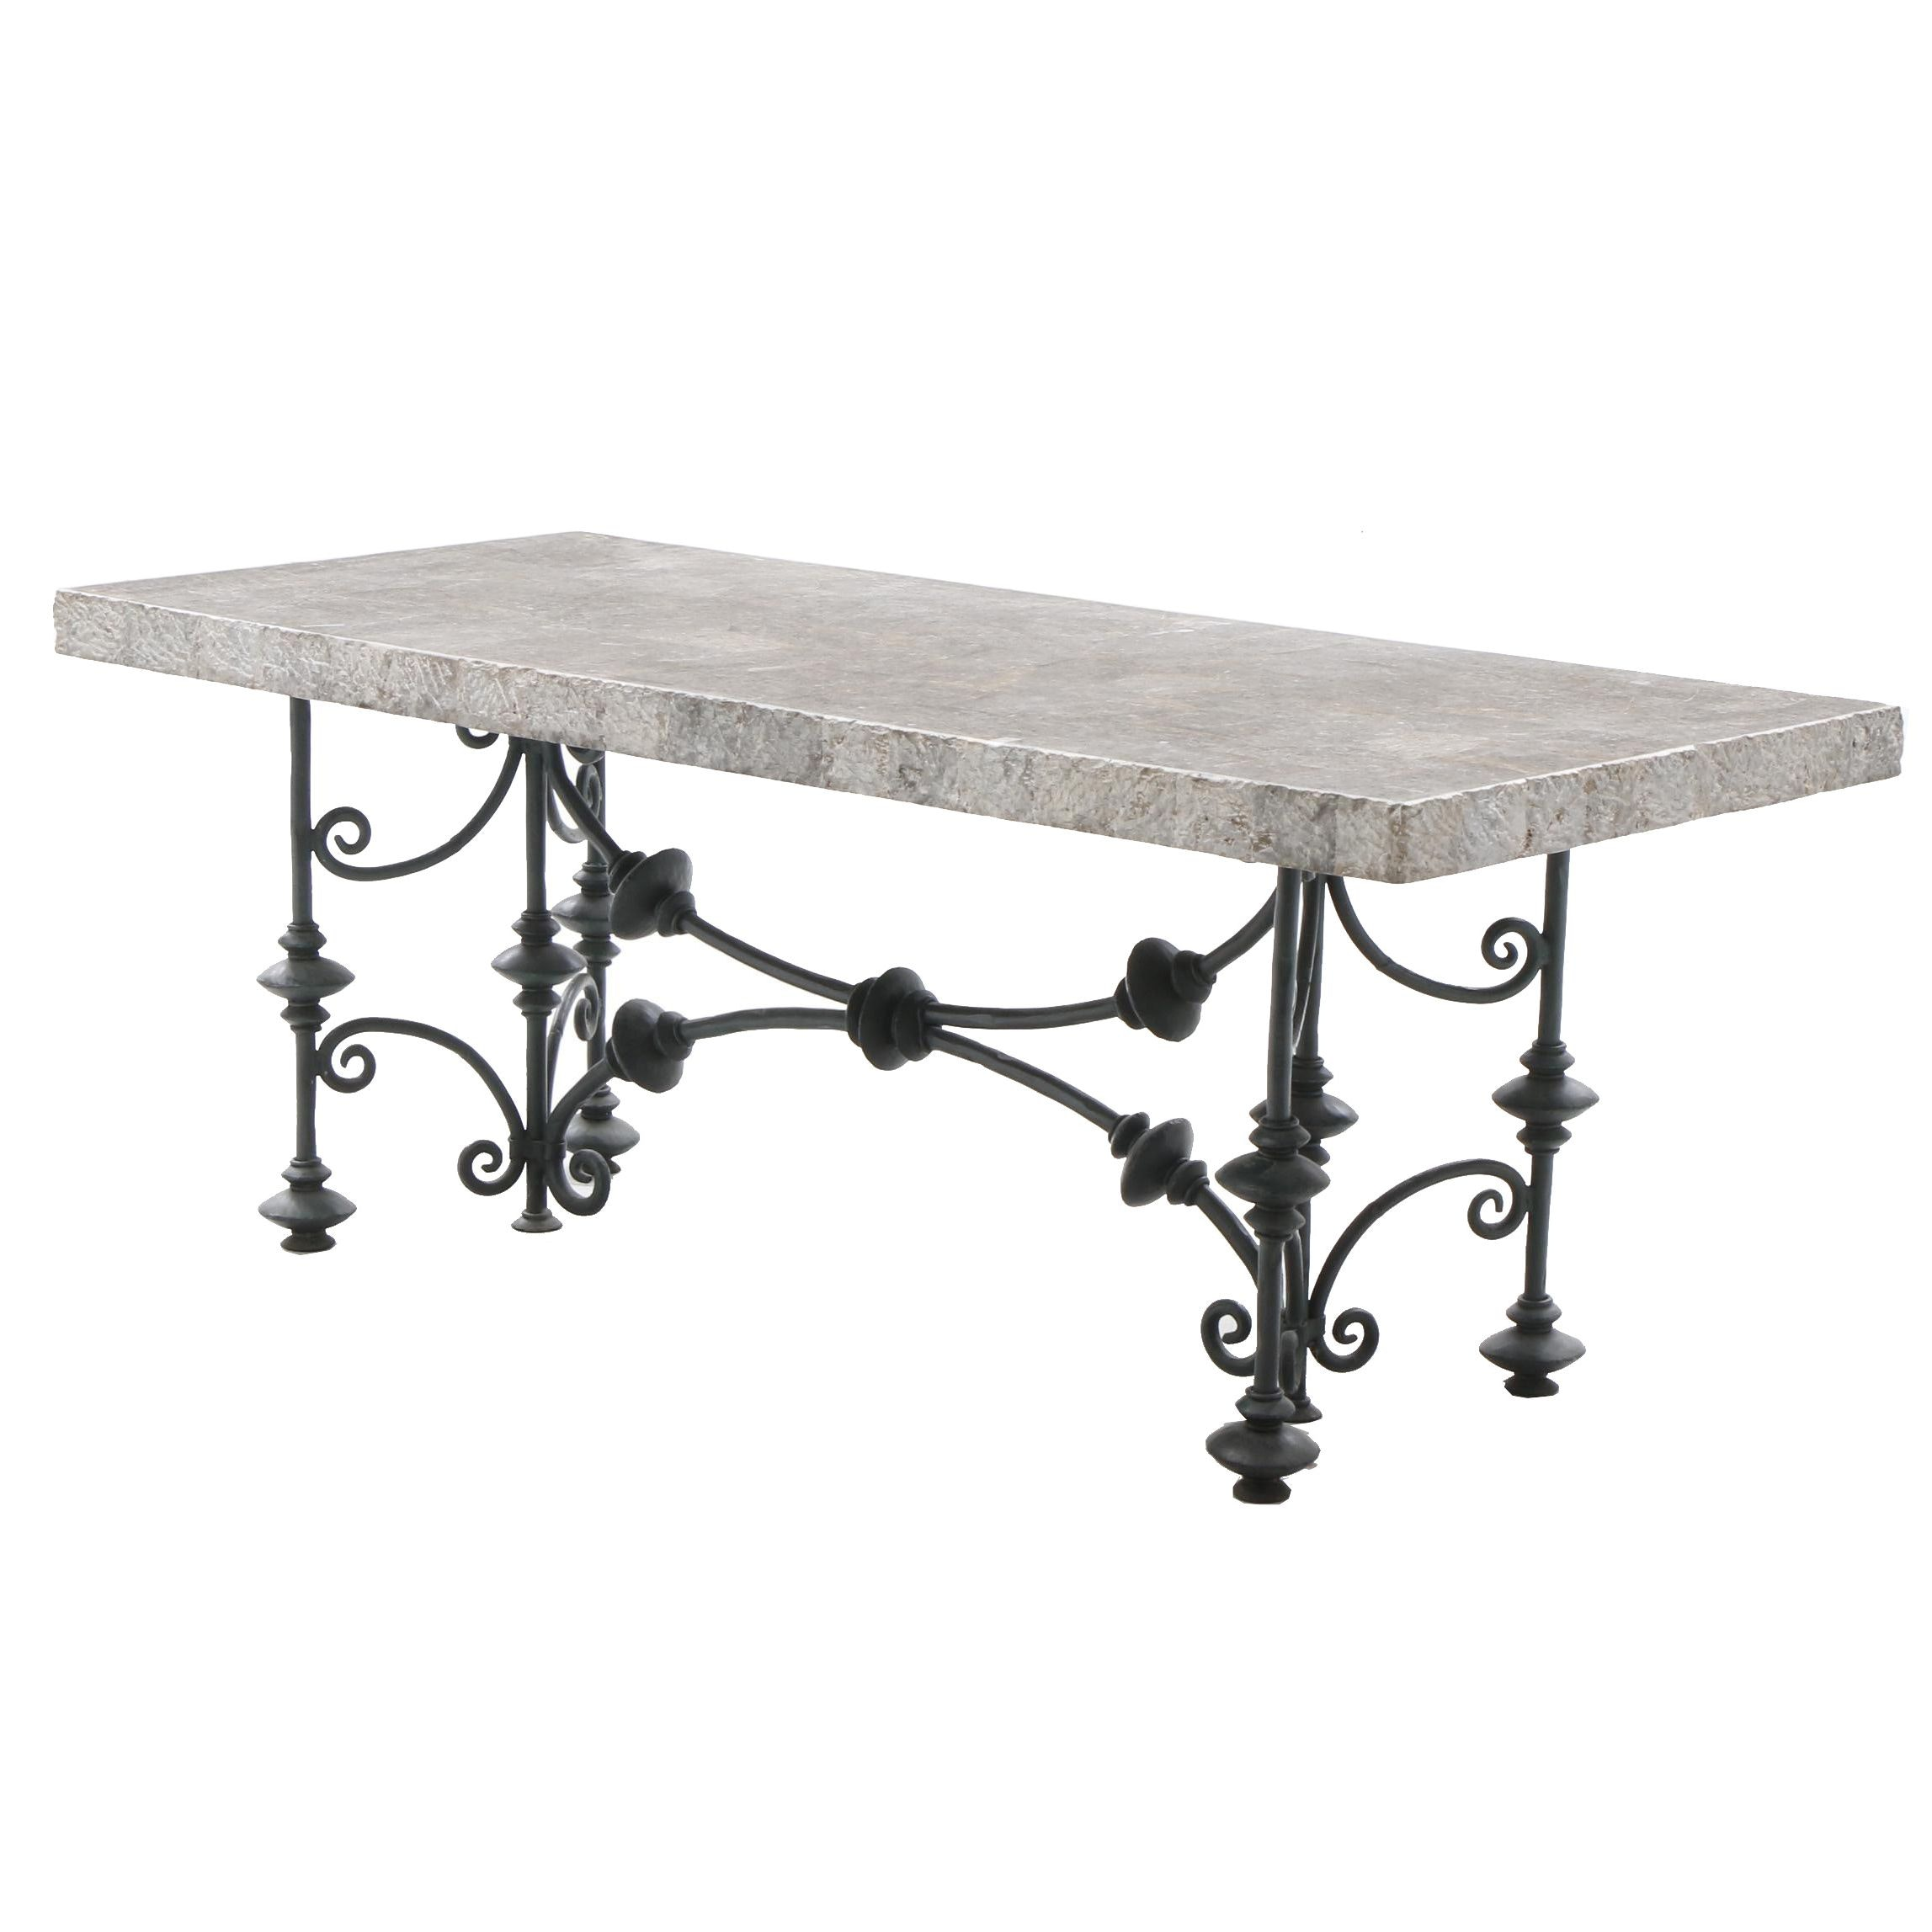 Maitland-Smith Faux Marble Top Dining Table